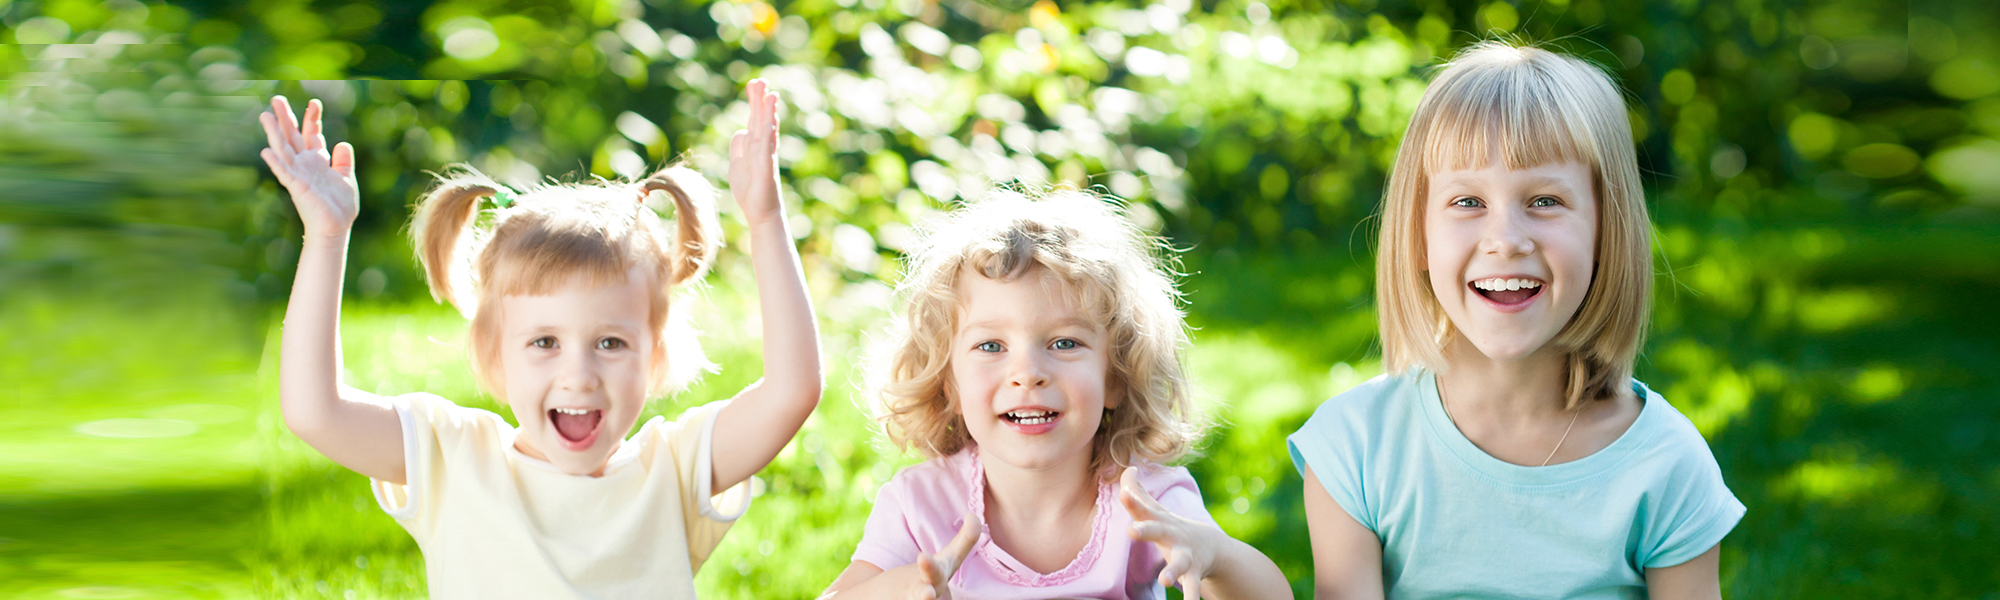 smile knowing that your children's dental health are safe and happy in our hands